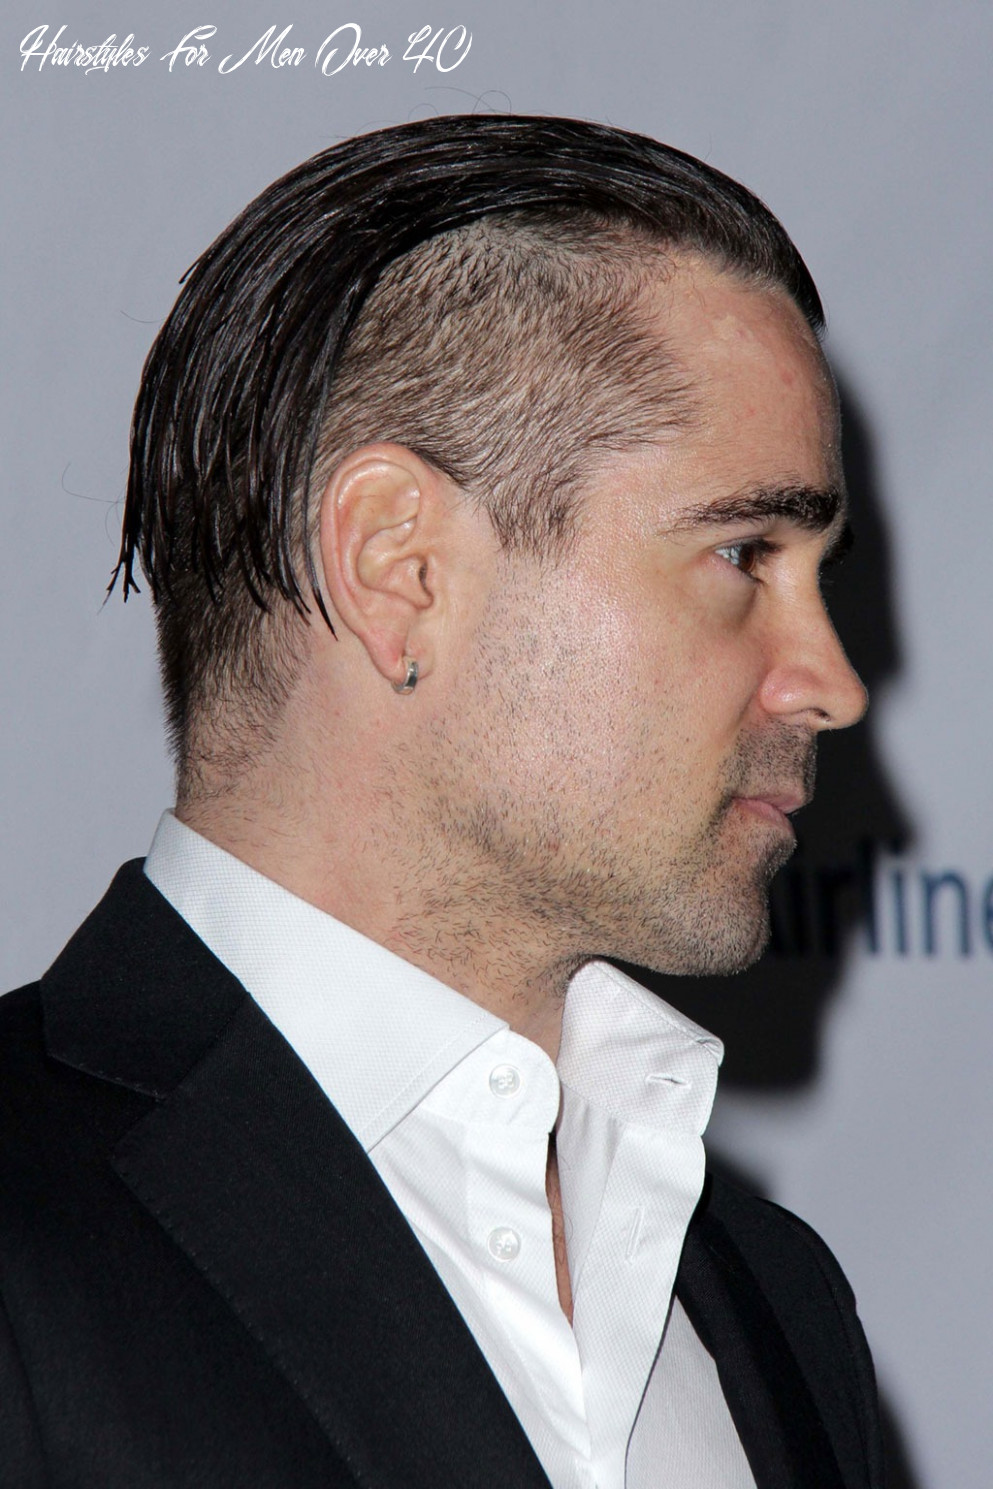 The Best and Worst Hairstyles for Men in Their 8s | Best Life